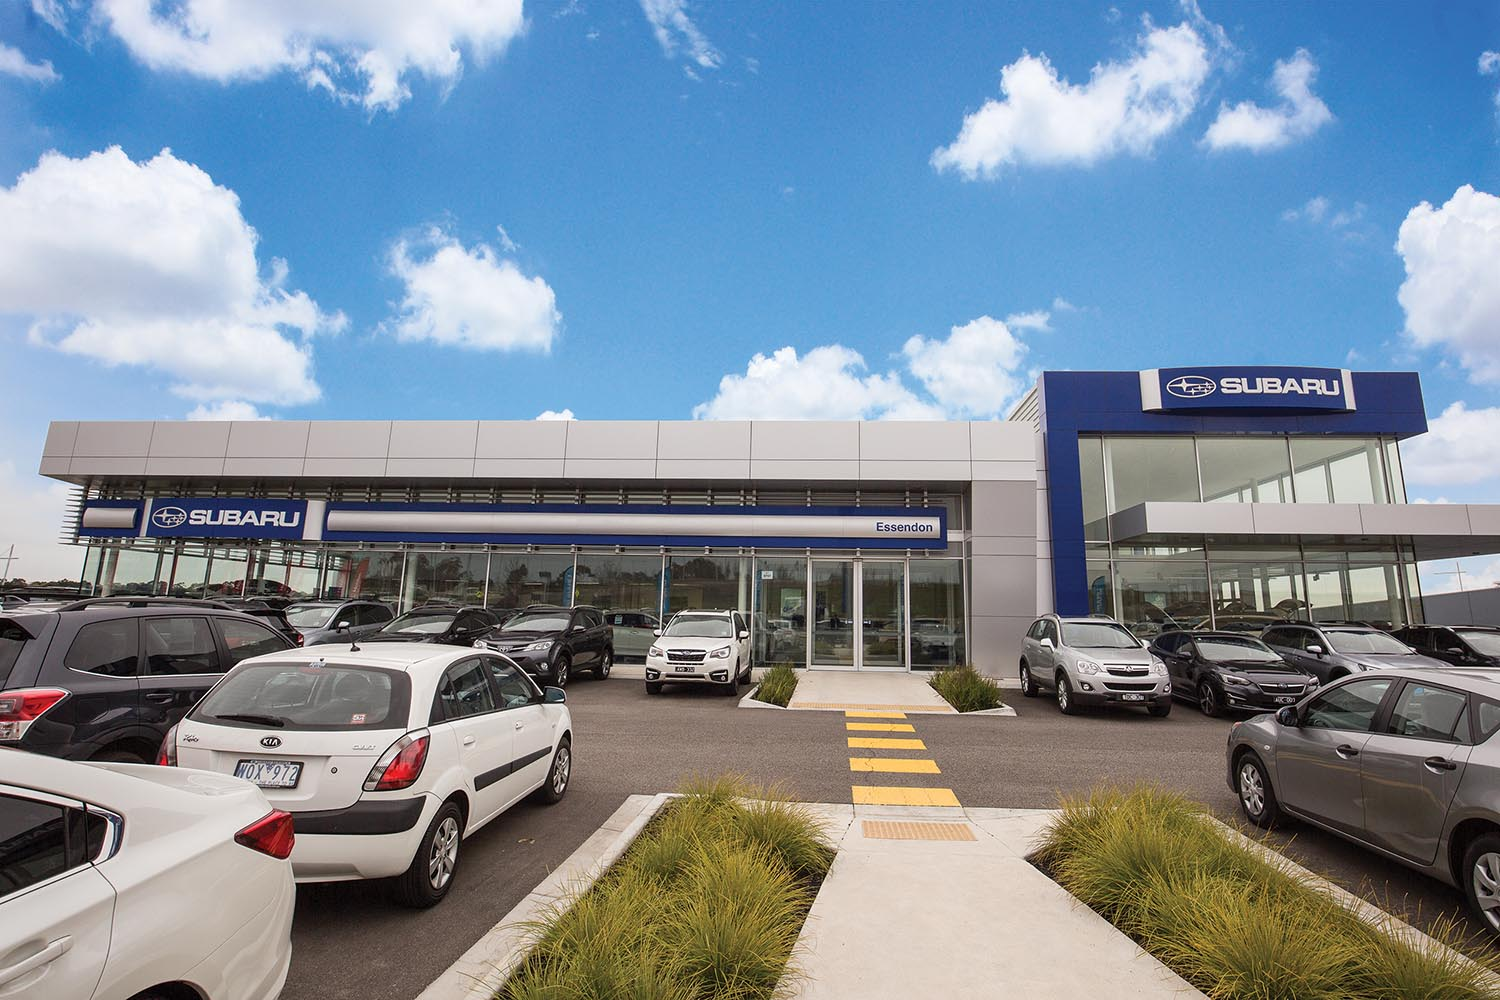 Subaru Car Dealership